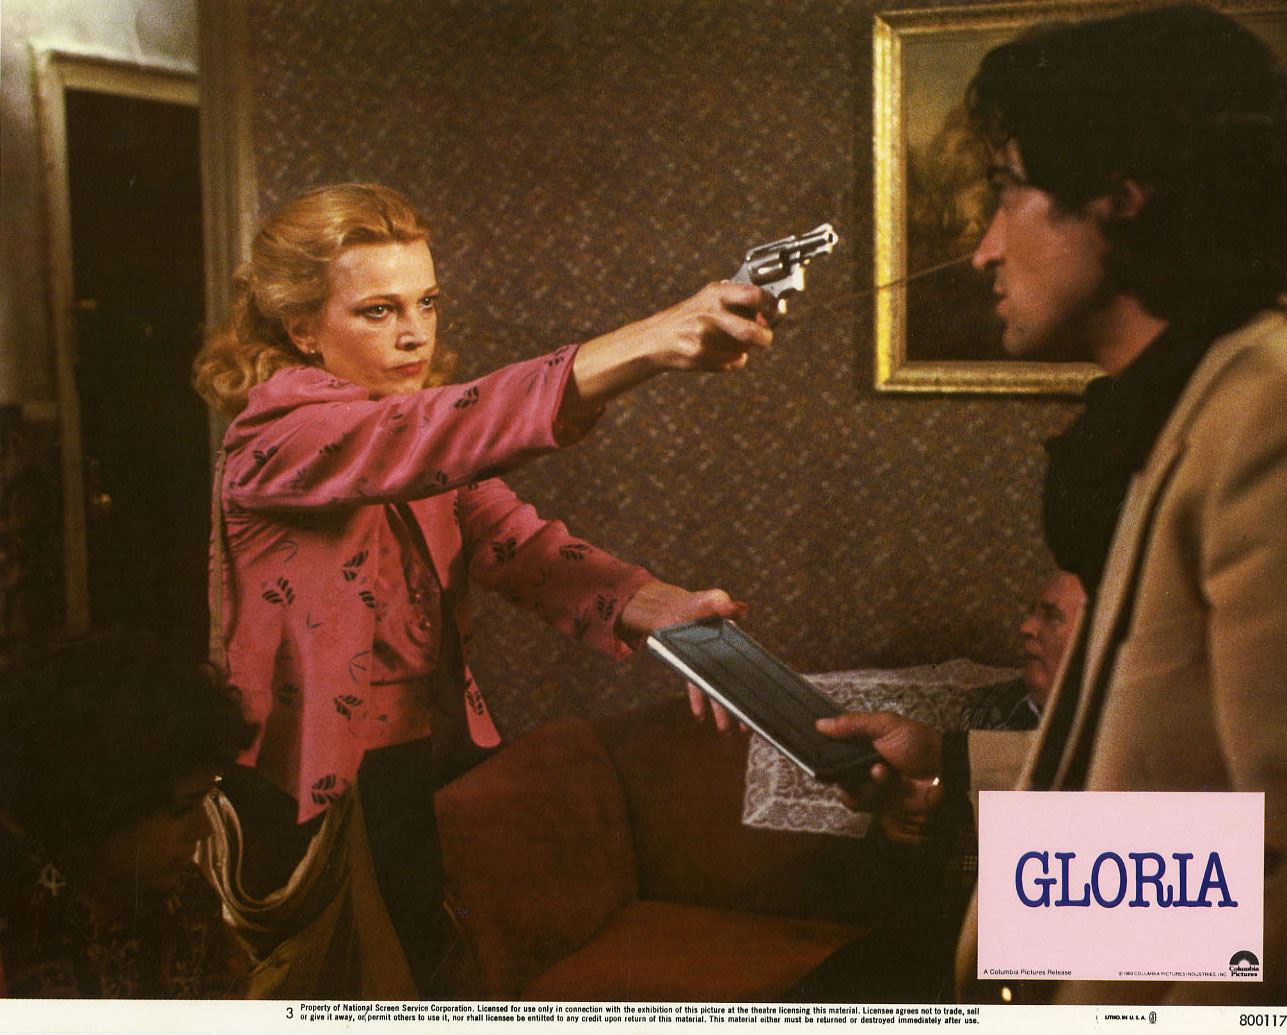 7 Art Cinema | Gloria - 1980 - John Cassavetes | Directed by : John Cassavetes, Written by  : John Cassavetes, Produced by : Sam Shaw et Stephen F. Kesten, Production : Columbia Pictures, Music by : Bill Conti, Cinematography : Fred Schuler, Edited by : George C. Villaseor, United States, Colors - 1,85:1 - Mono - 35 mm, Crime Thriller, 123 minutes, Release dates (US) : October 1, 1980 at New York, Release dates (France) : December 31, 1980, Cast, Gena Rowlands as Gloria Swenson, Julie Carmen as Jeri Dawn, Buck Henry as Jack Dawn, John Adames as Phil Dawn, Lupe Garnica as Margarita Vargas, John Finnegan as Frank, Tom Noonan, J.C. Quinn, and Sonny Landham as Mob henchmen, Lawrence Tierney as Broadway bartender | Film Photograph